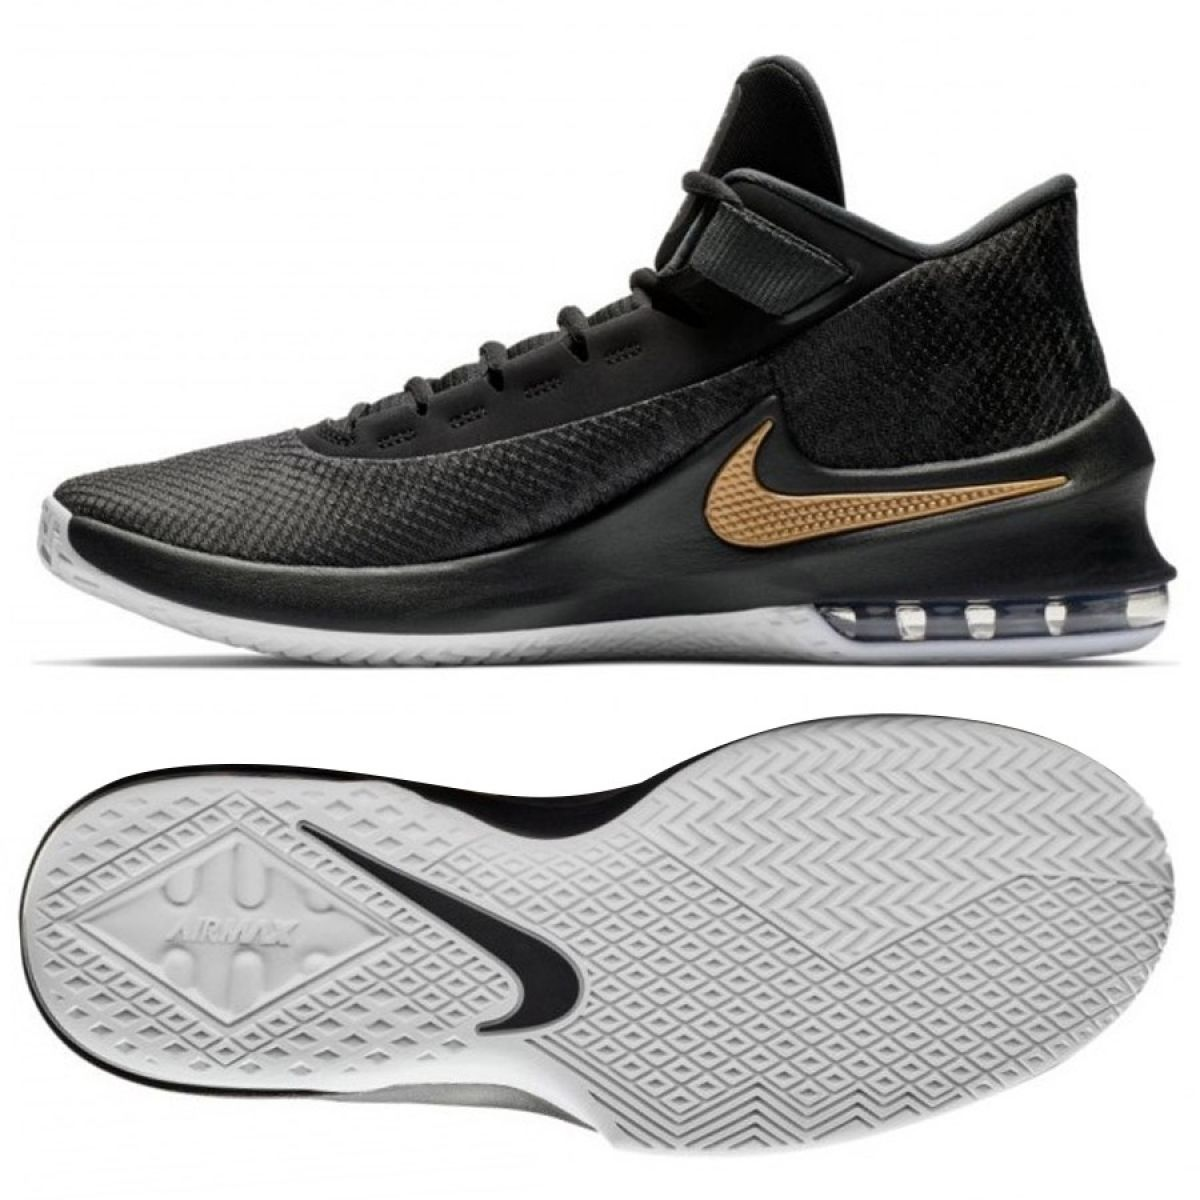 Details about Basketball shoes Nike Air Max Infuriate 2 Mid M AA7066 002 black black